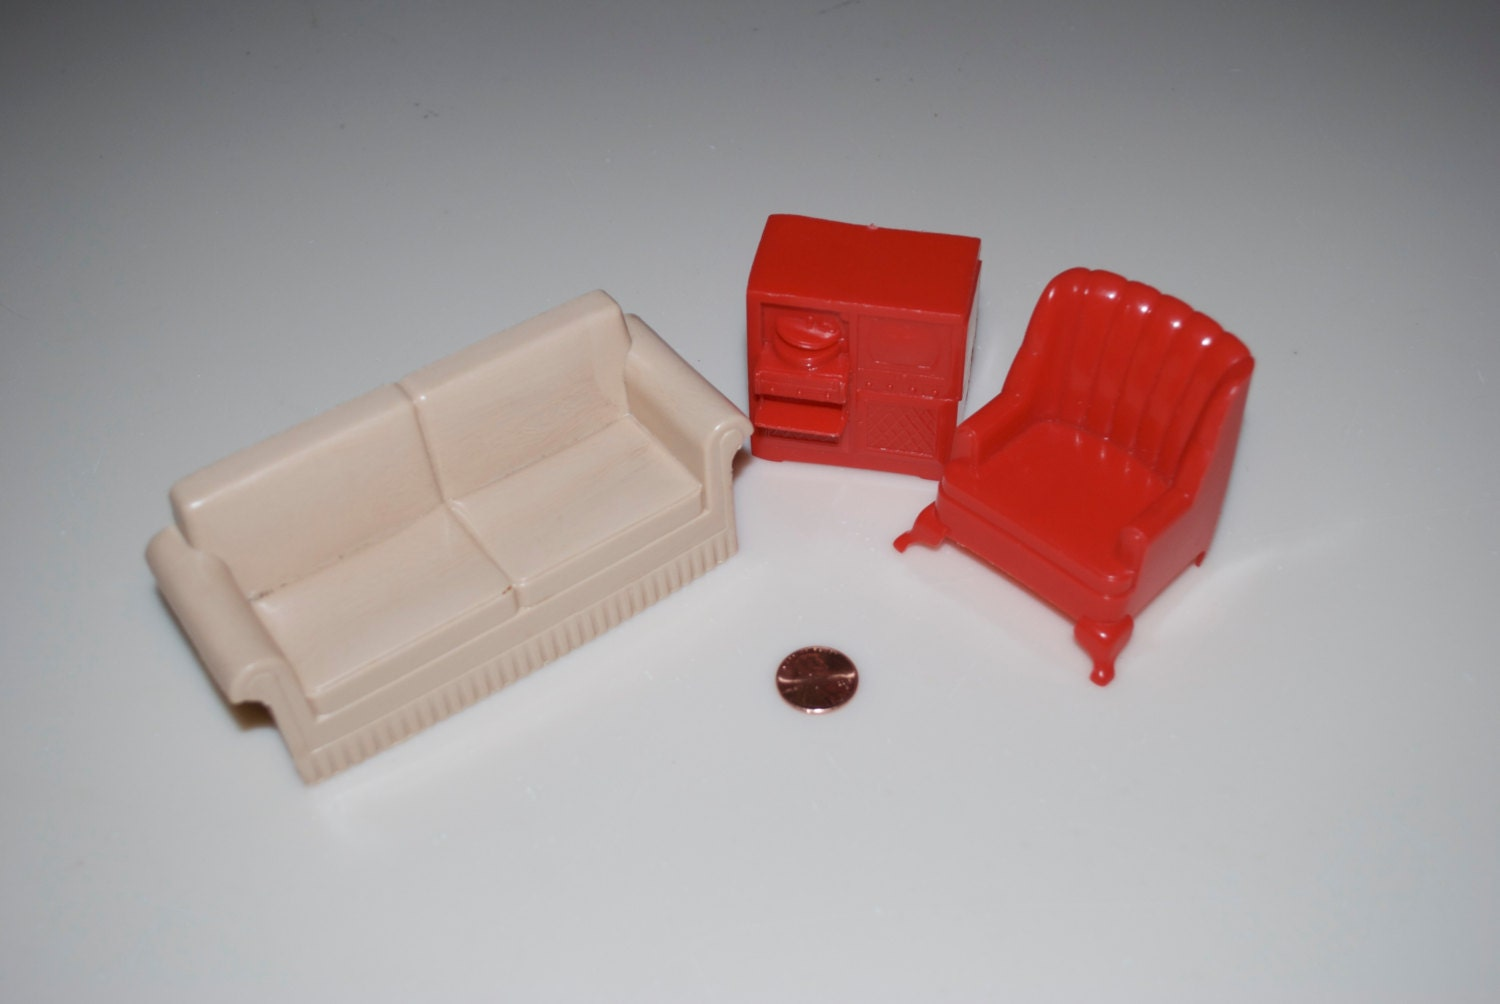 Marx Living Room Plastic Dollhouse Furniture Tan Sofa Couch Red Chair Stereo Radio Console